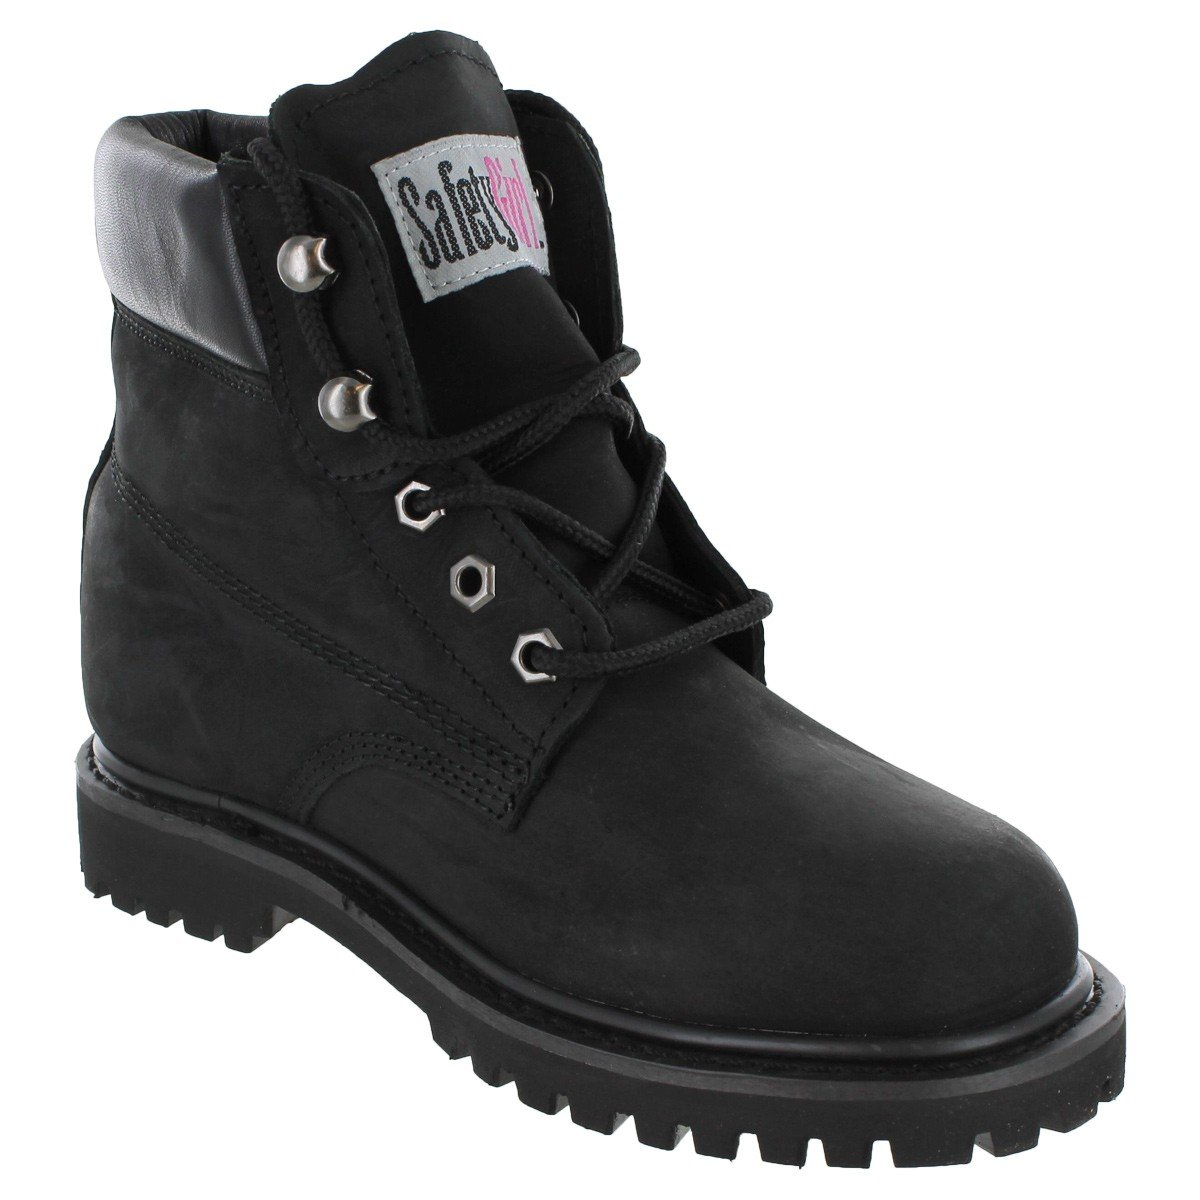 Safety Girl II Steel Toe Work Boots - Black by Safety Girl